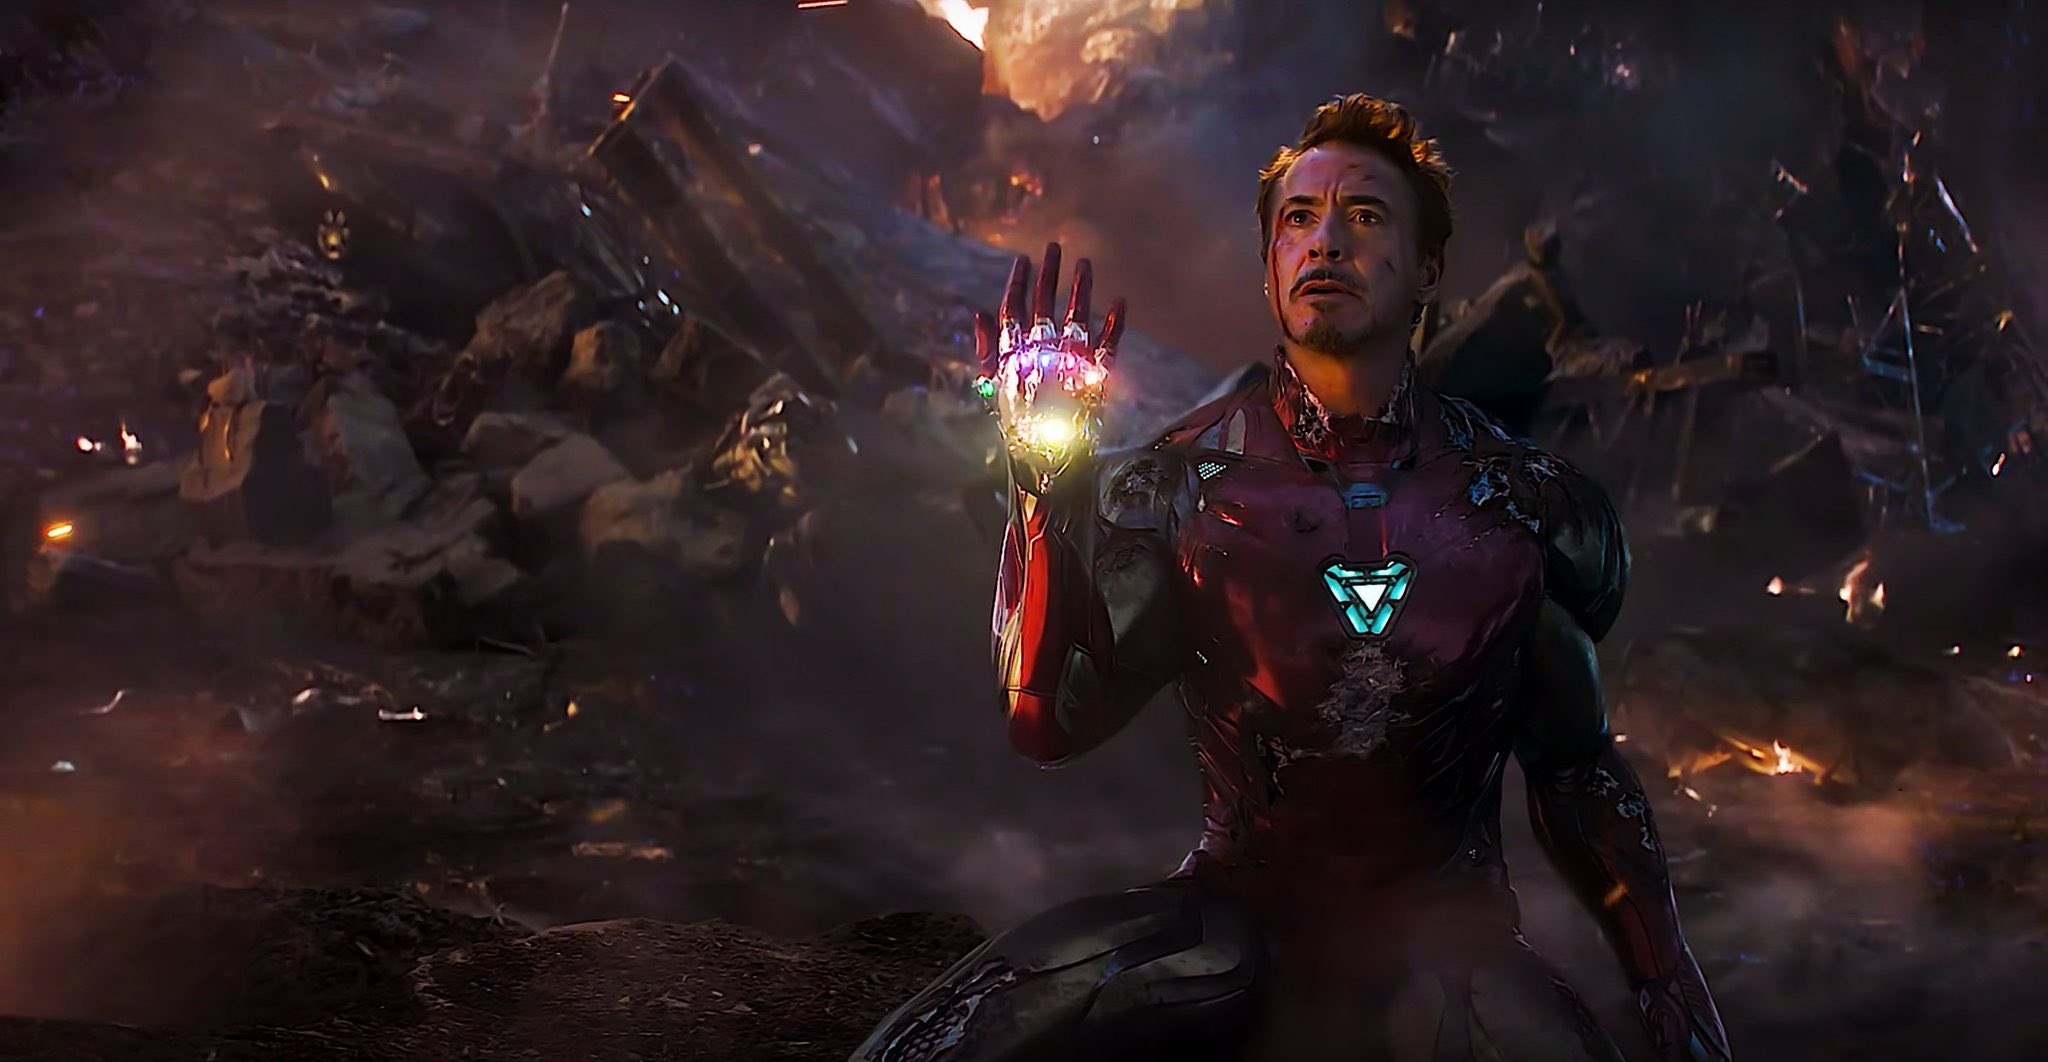 Iron Man Endgame Robert Downey Jr.